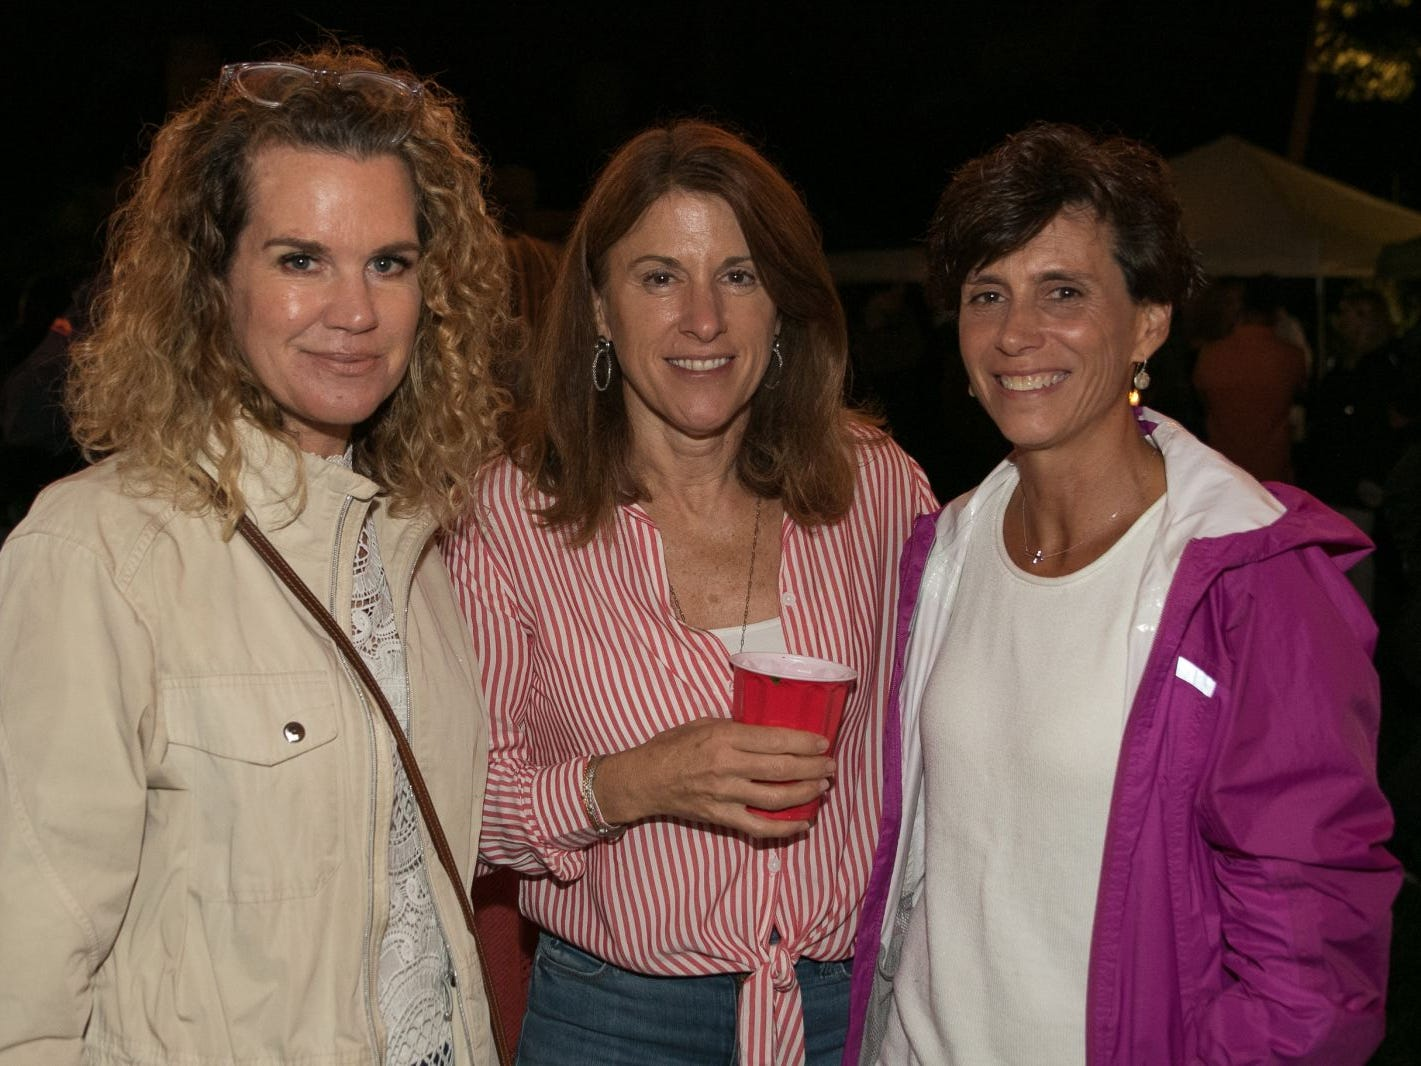 "Regina Wackerman, Lyn Maltz, Cathy Cardew. Pam Chmiel, The Tres Amigos Paella Company (David Colin, Joe Scanlon and Jeff Saladucha), The Jims (Jim Gibney and Jim Toscano), George Nikias, Ron Oscher and Neil Murphy held Ridgewood Cooks for a Cause to benefit ""Cookies For Kids Cancer"" (Childhood Cancer Research) and YCS (Youth Consultaion Services) charities. 09/08/2018"